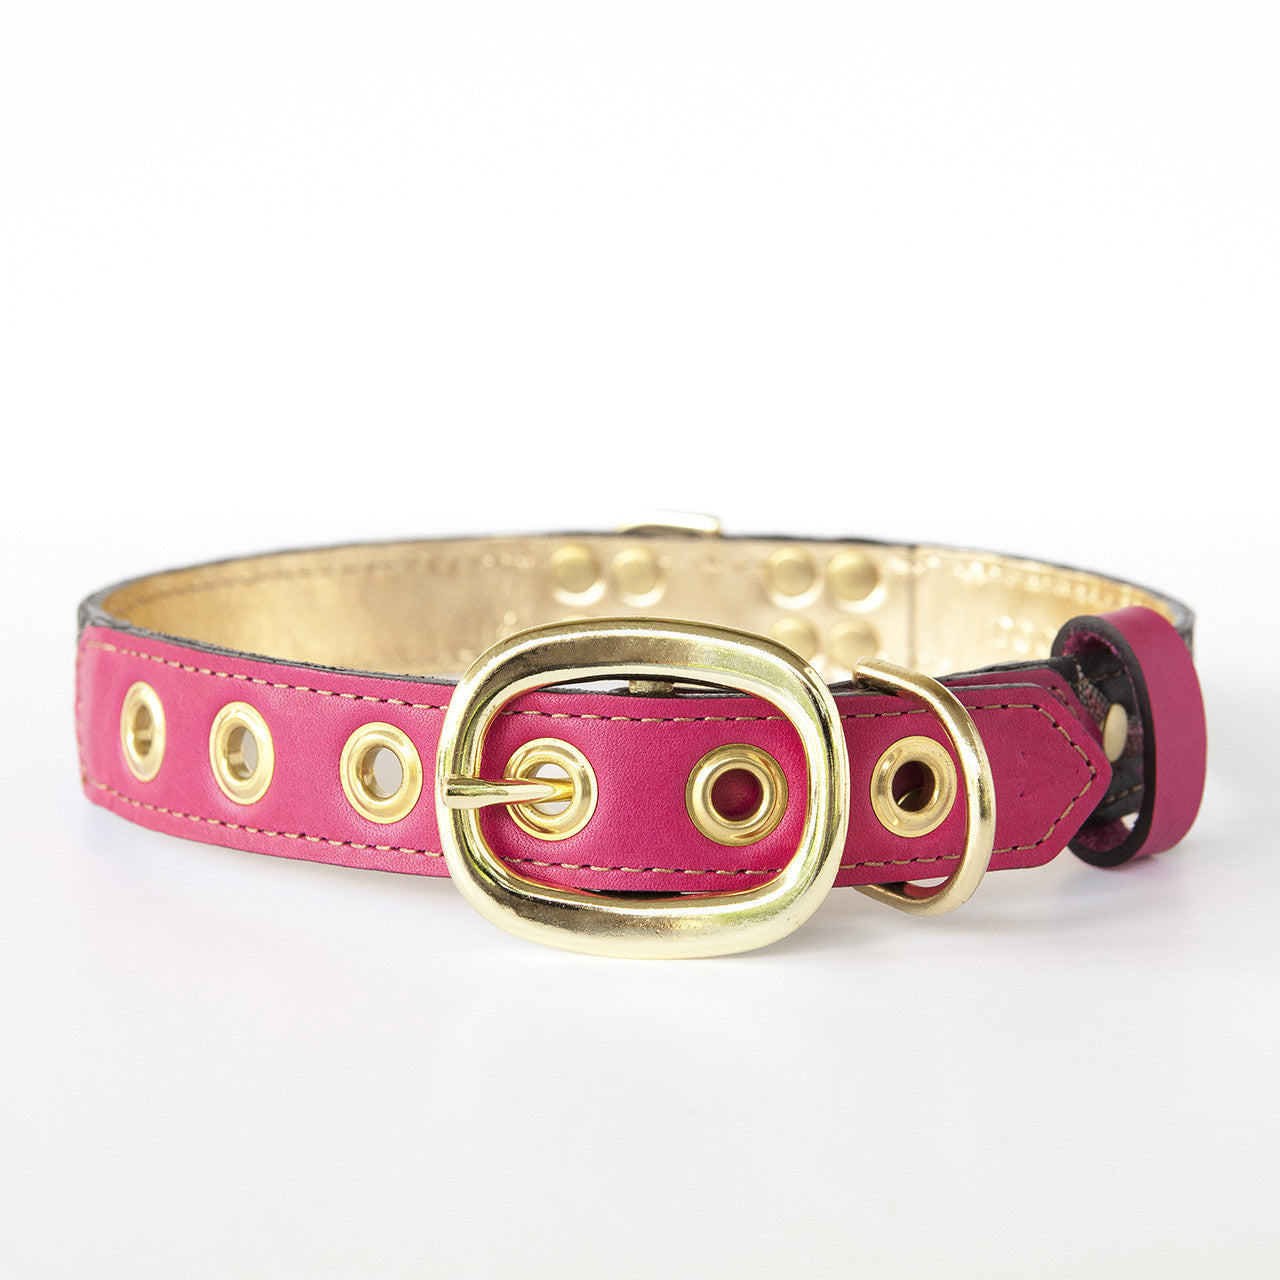 Hot Pink Dog Collar with Black Leather + Bright Pink Stitching (back view)